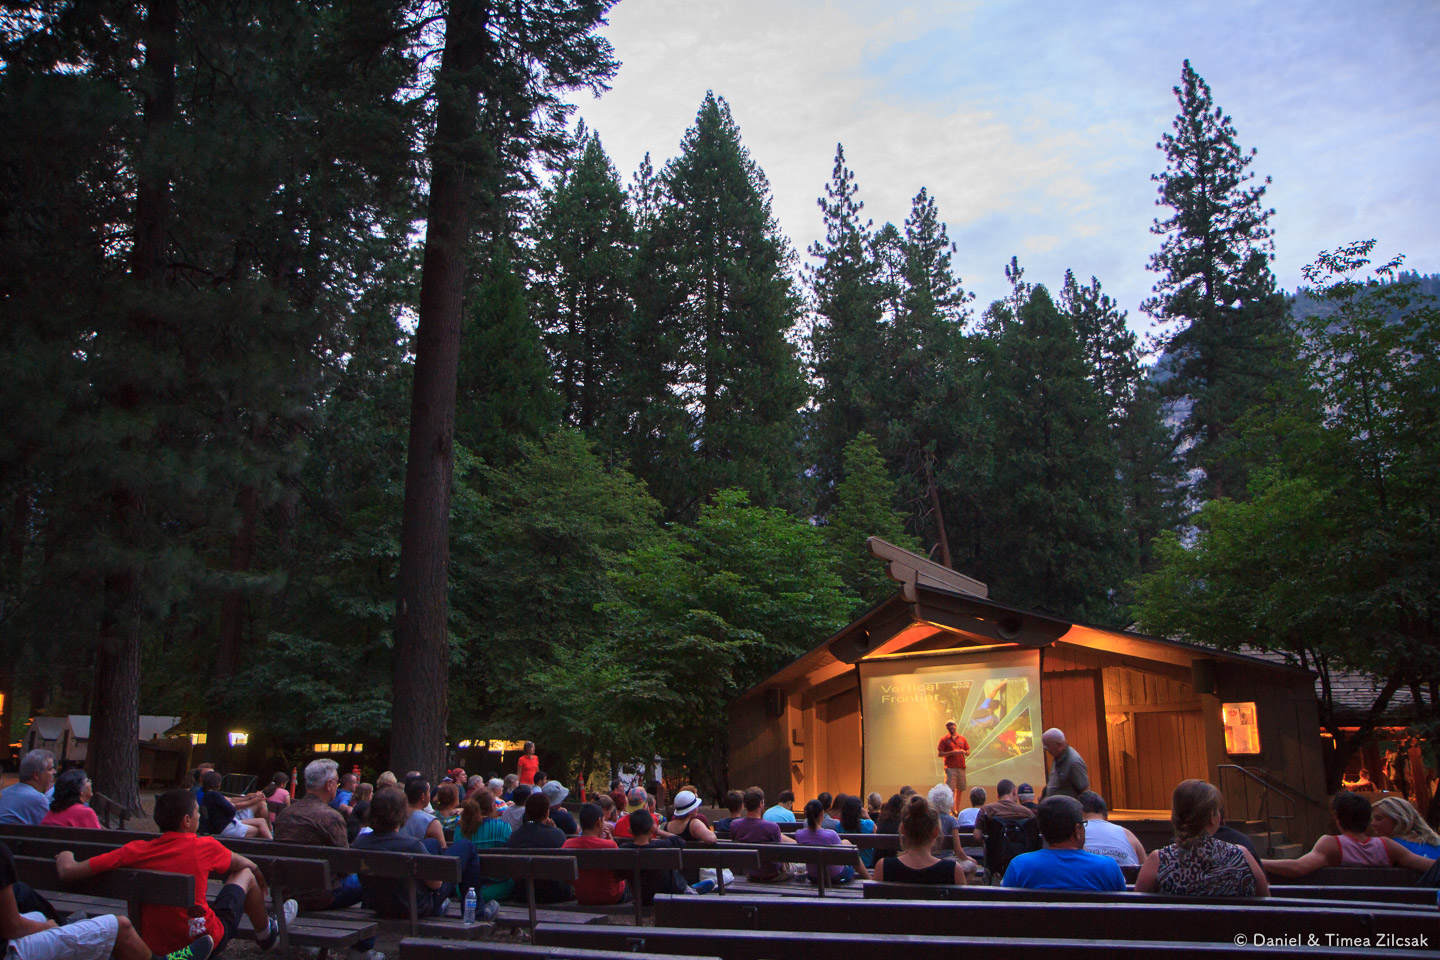 Enjoying a show at the Curry Village outdoor theater